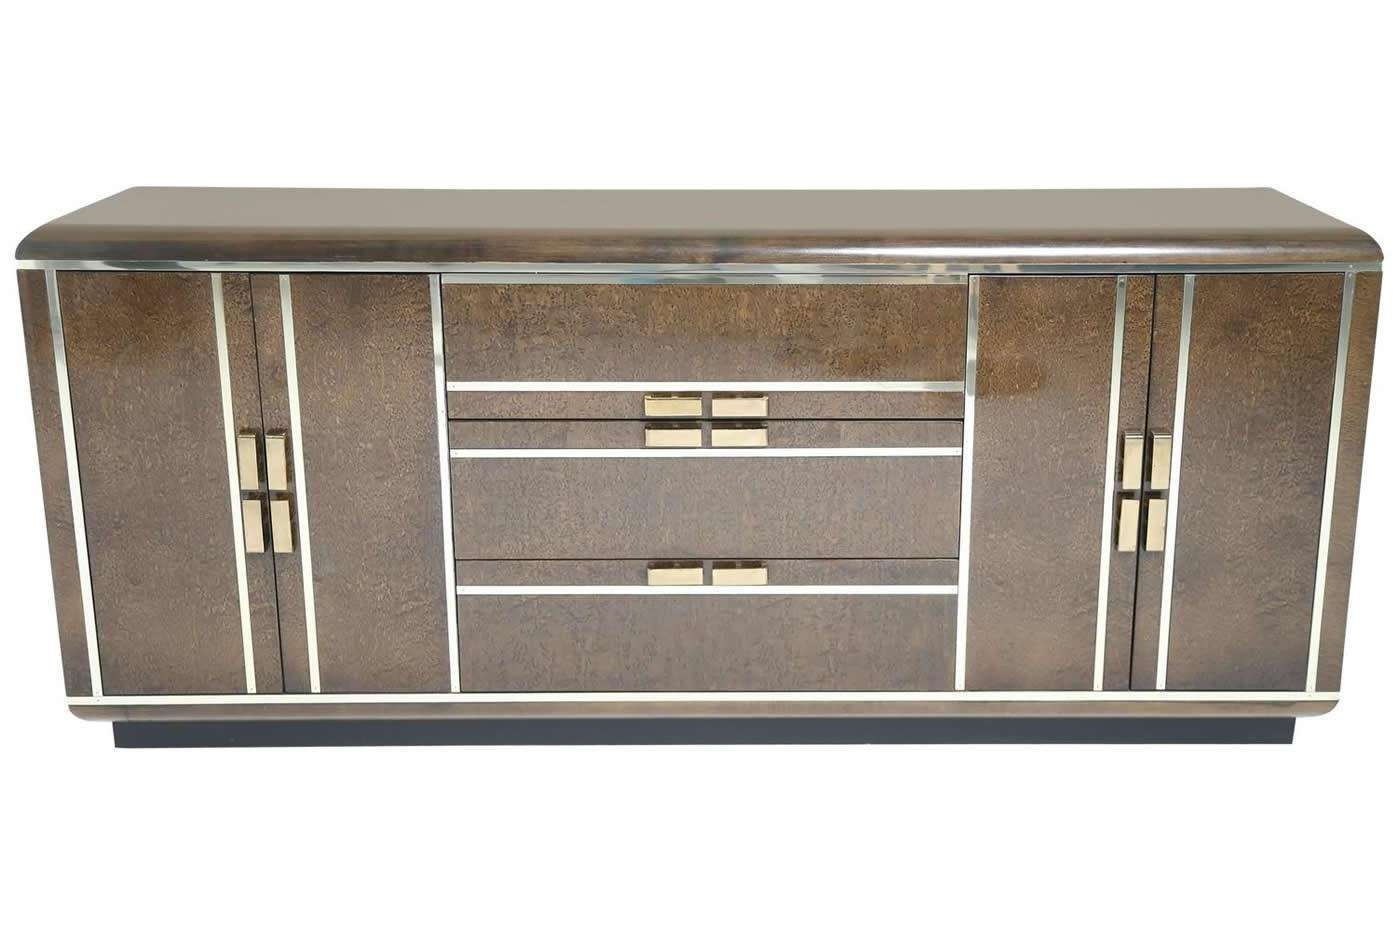 Maple Burl Sideboard With Brass Trim From Romweber For Sale At Pamono Within Maple Sideboards (View 8 of 20)